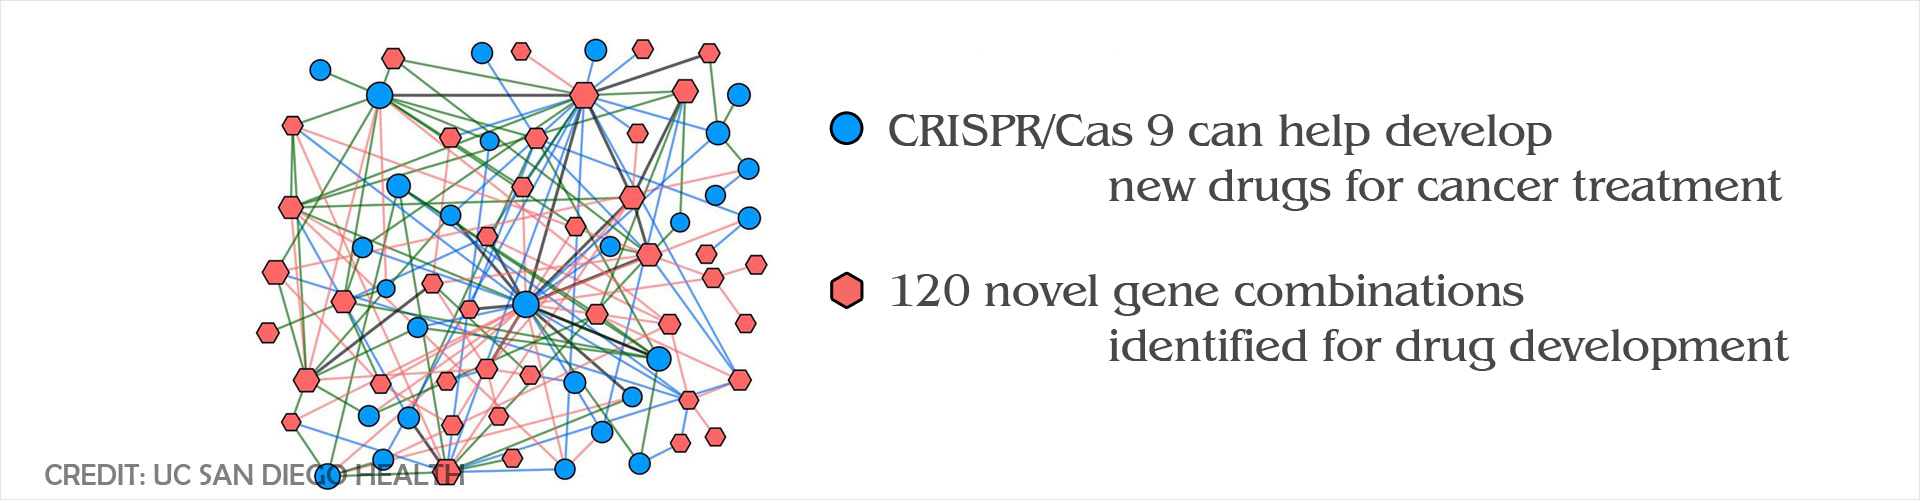 New Drug Targets for Cancer Identified Using CRISPR